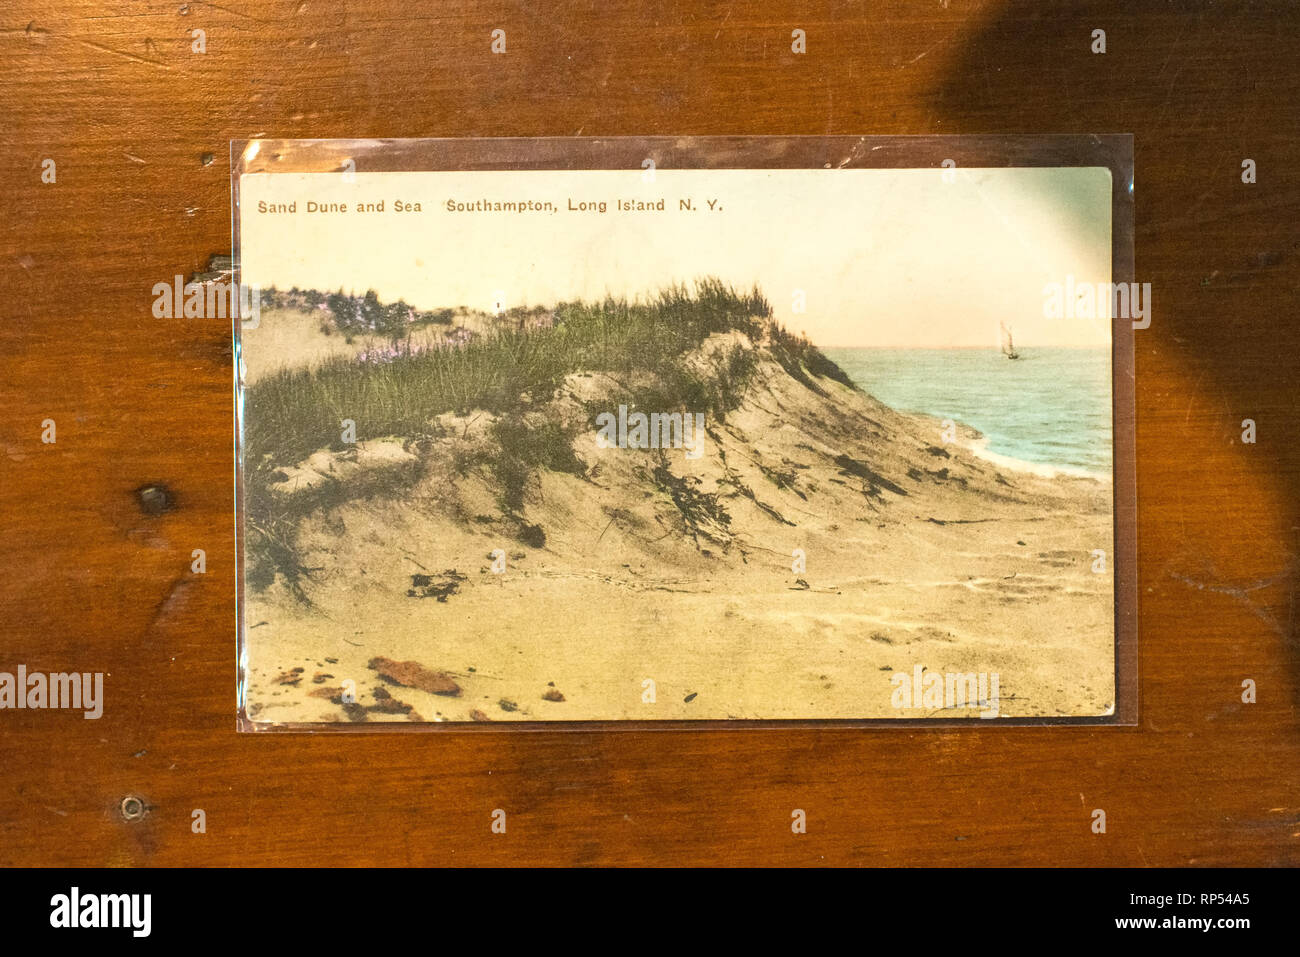 Historic collectible postcard of the Hamptons Southhampton seashore in Long Island, New York. - Stock Image